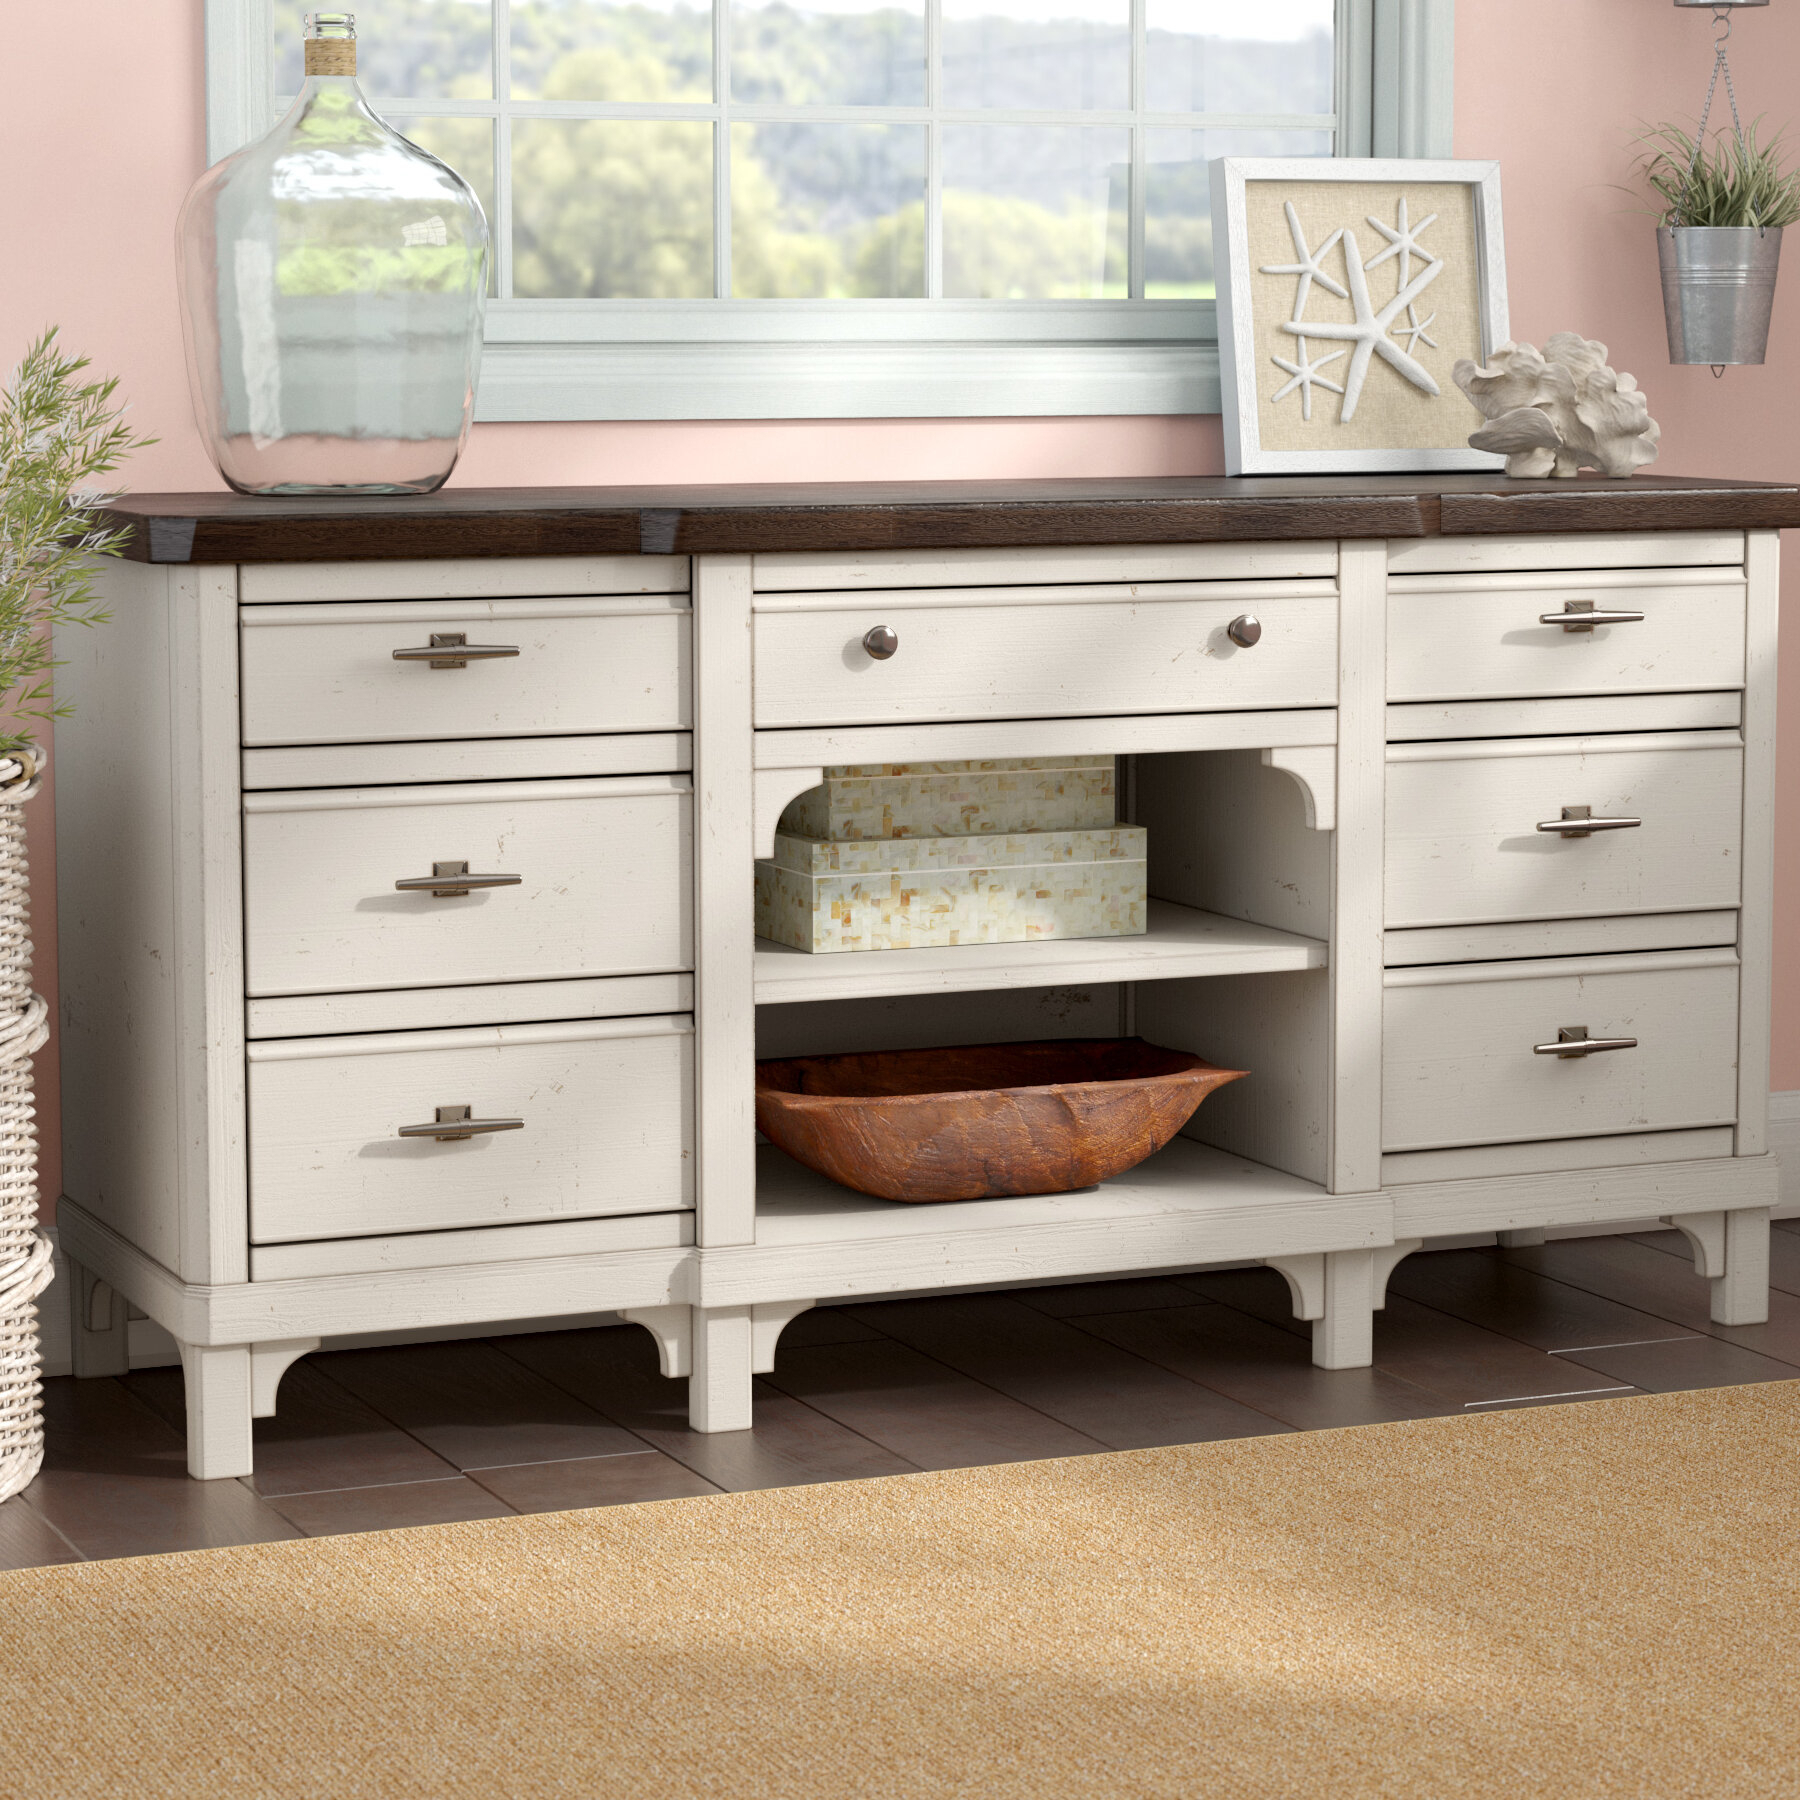 Georgetown Sideboard With Ruskin Sideboards (View 21 of 30)